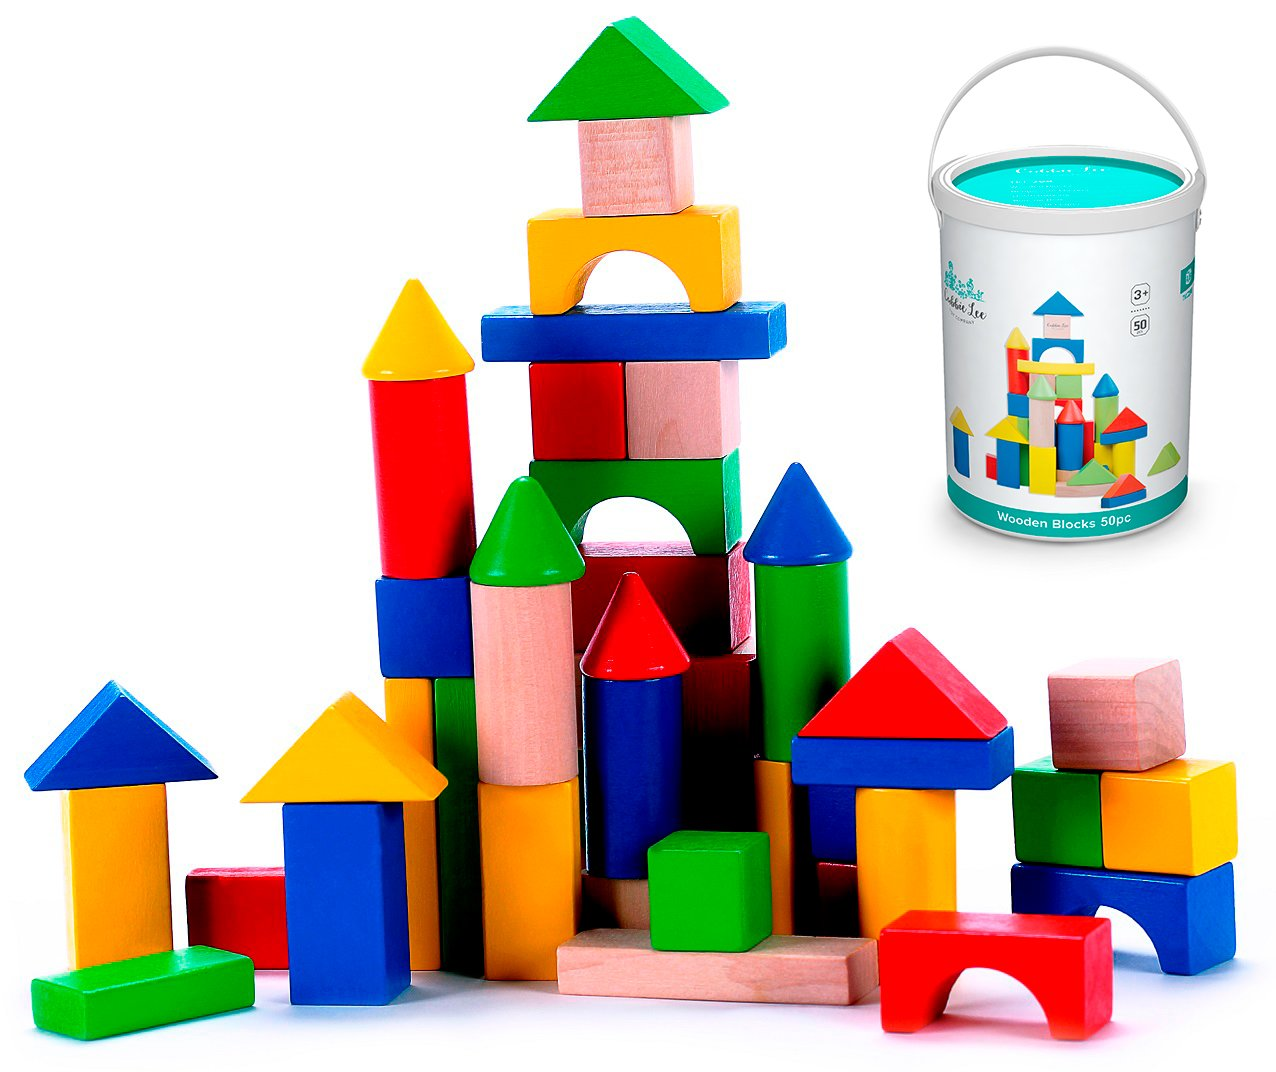 Cubbie Lee 50 pc Classic Wooden Building Blocks Set w/ Storage Bucket - for 3, 4, 5 Year Preschool Age Kids - Hardwood Colorful Safe Wood Blocks for Boys & Girls - Basic Build & Play Stacking Toy